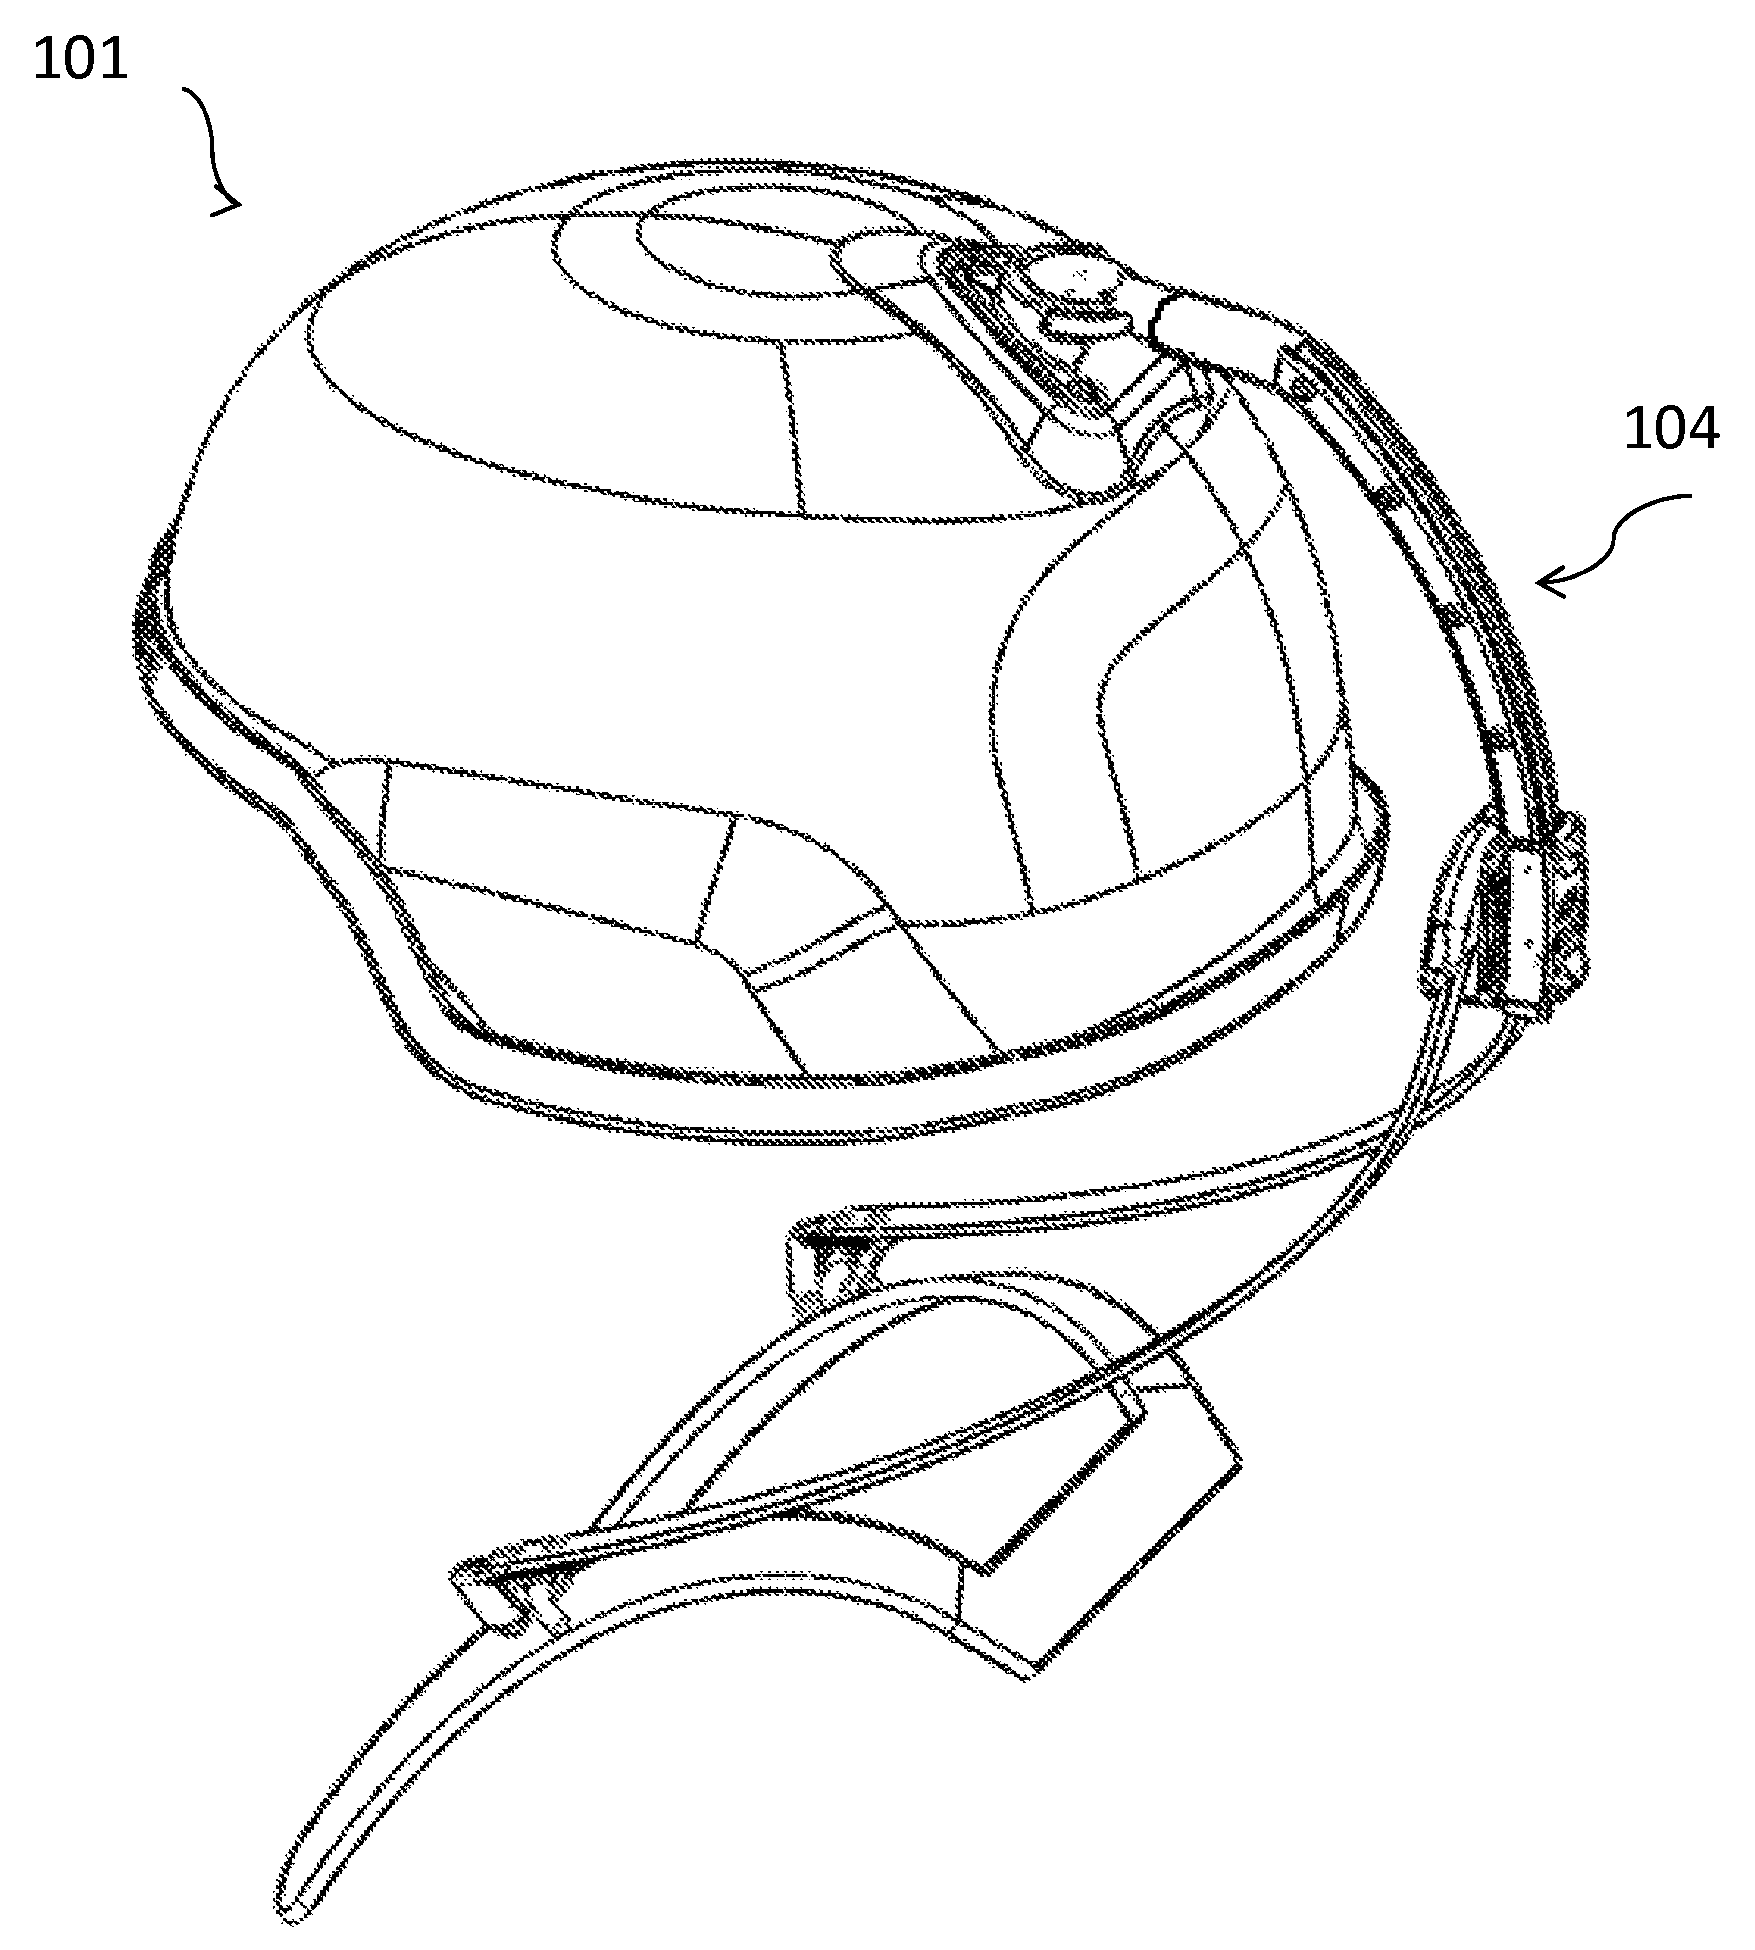 US09826792-00.png